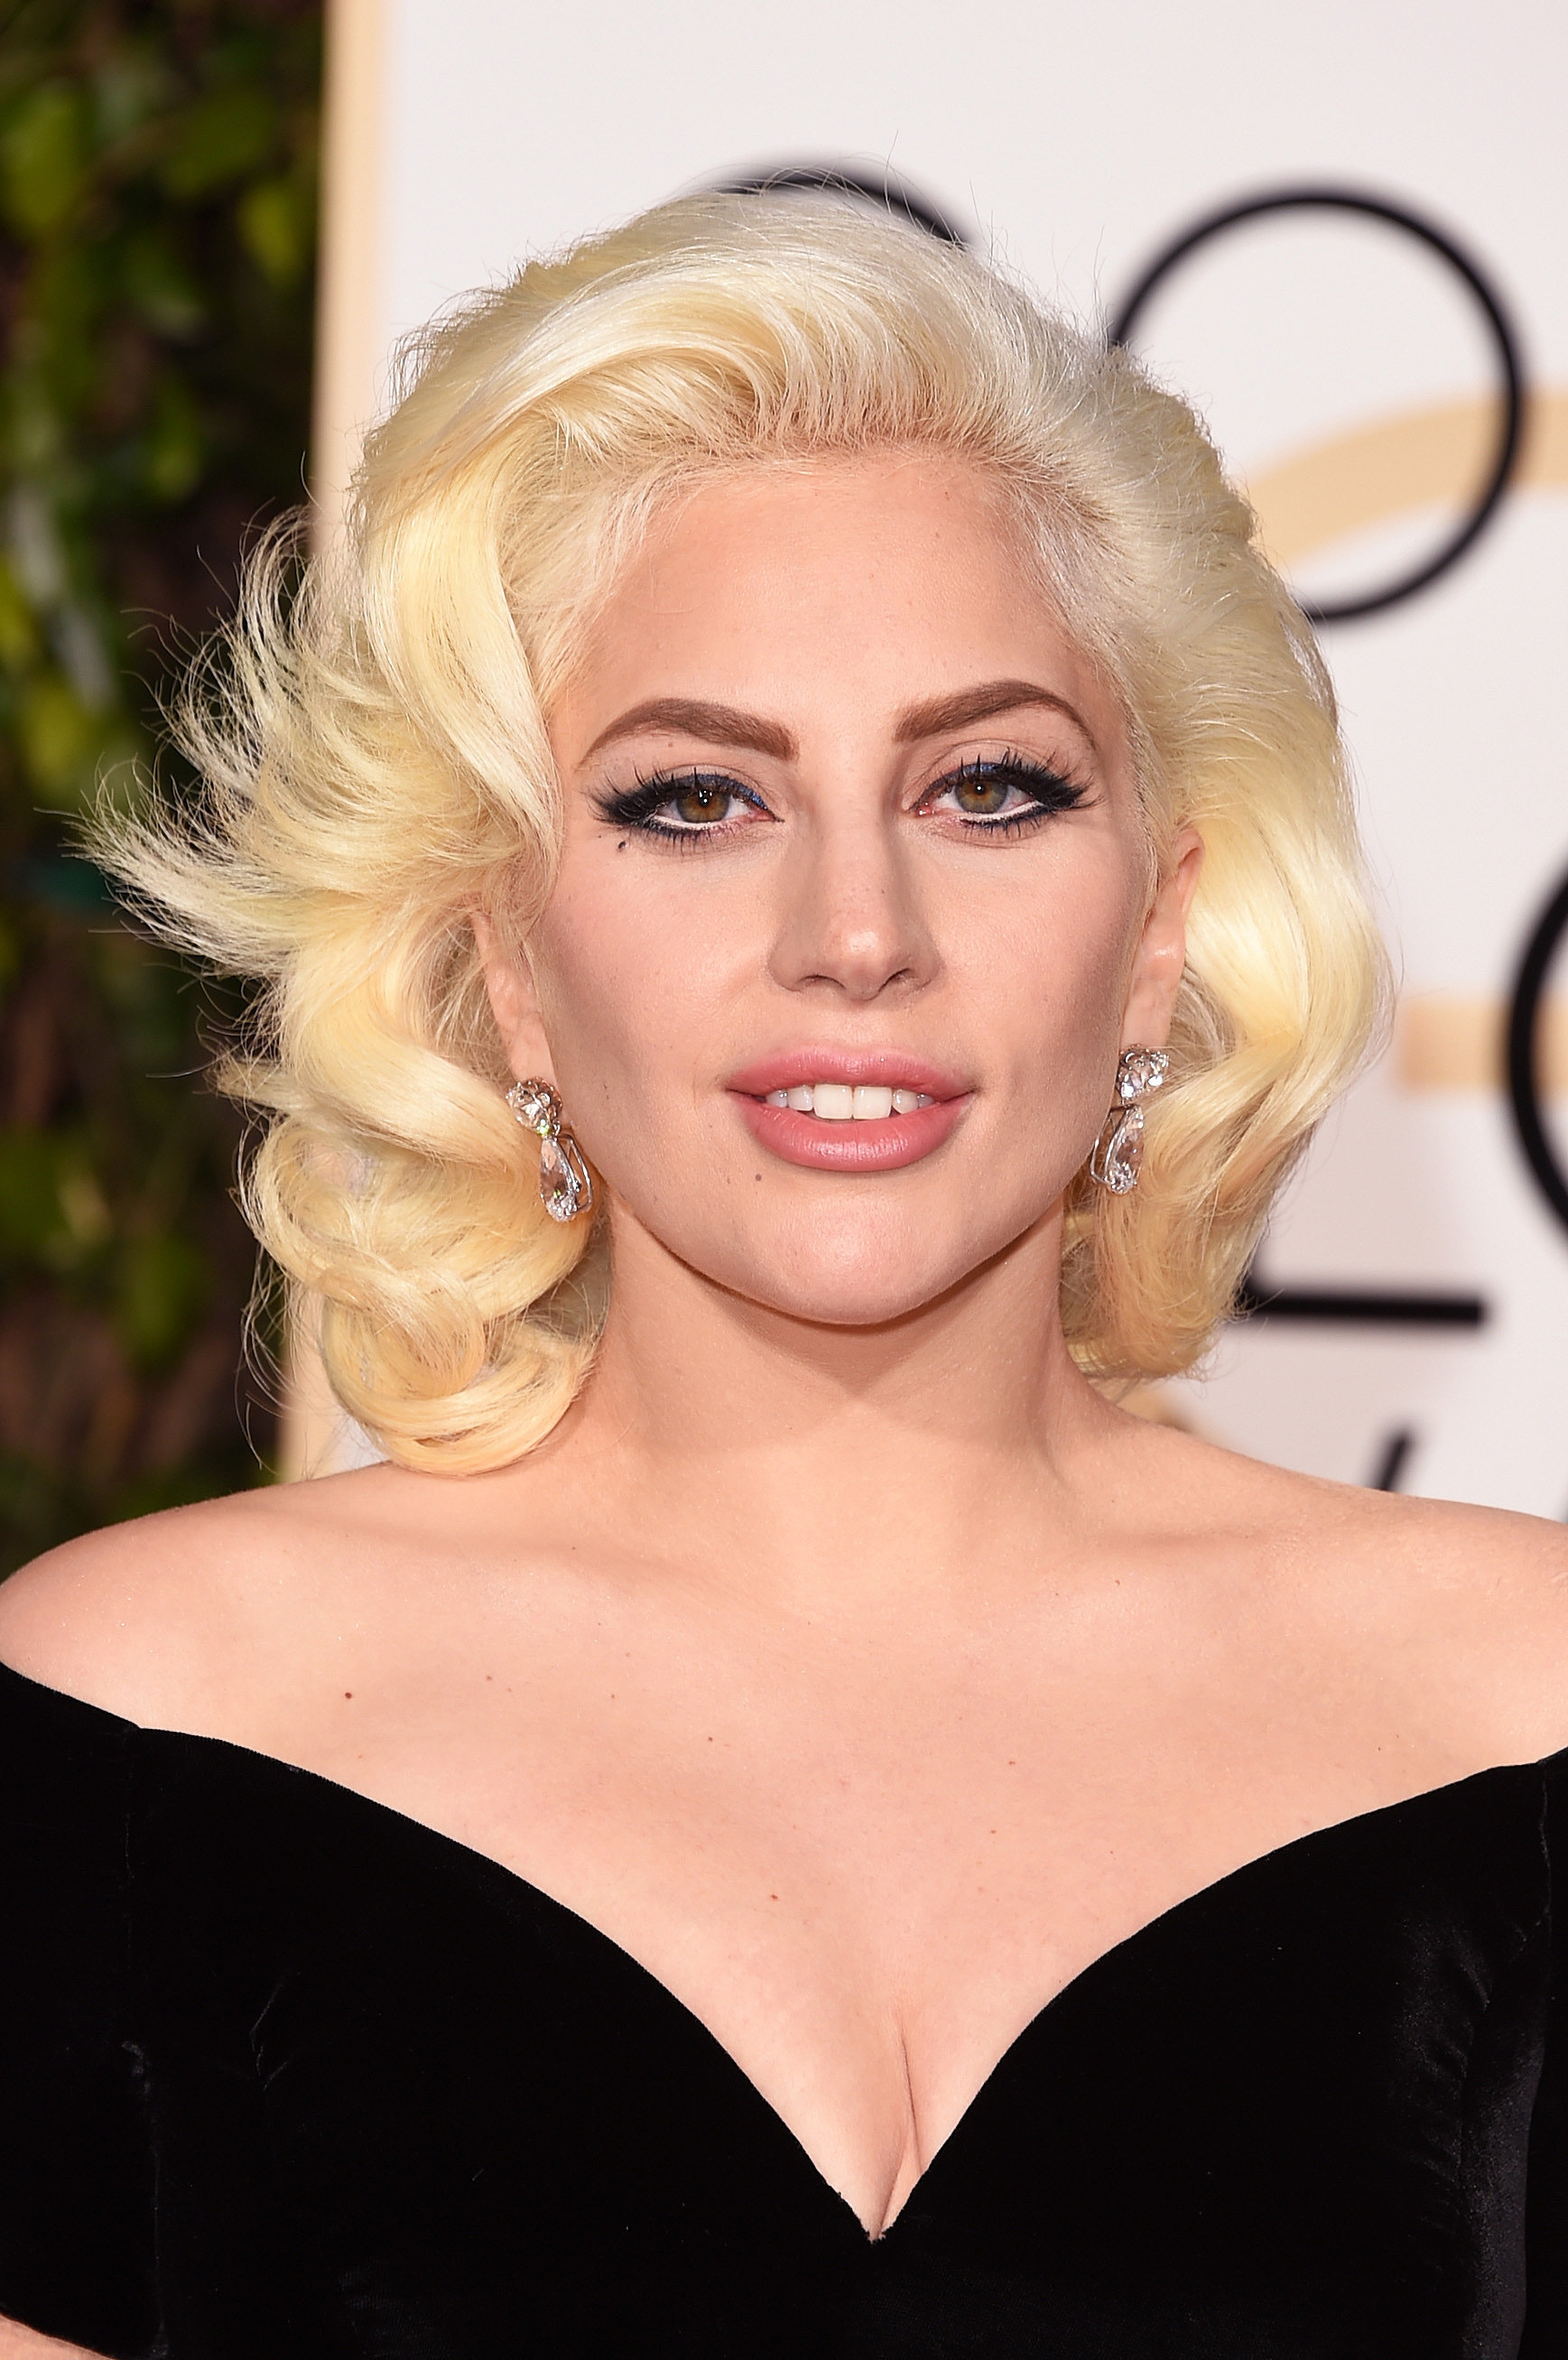 Lady Gaga's Golden Globes Makeup 2016 | POPSUGAR Beauty